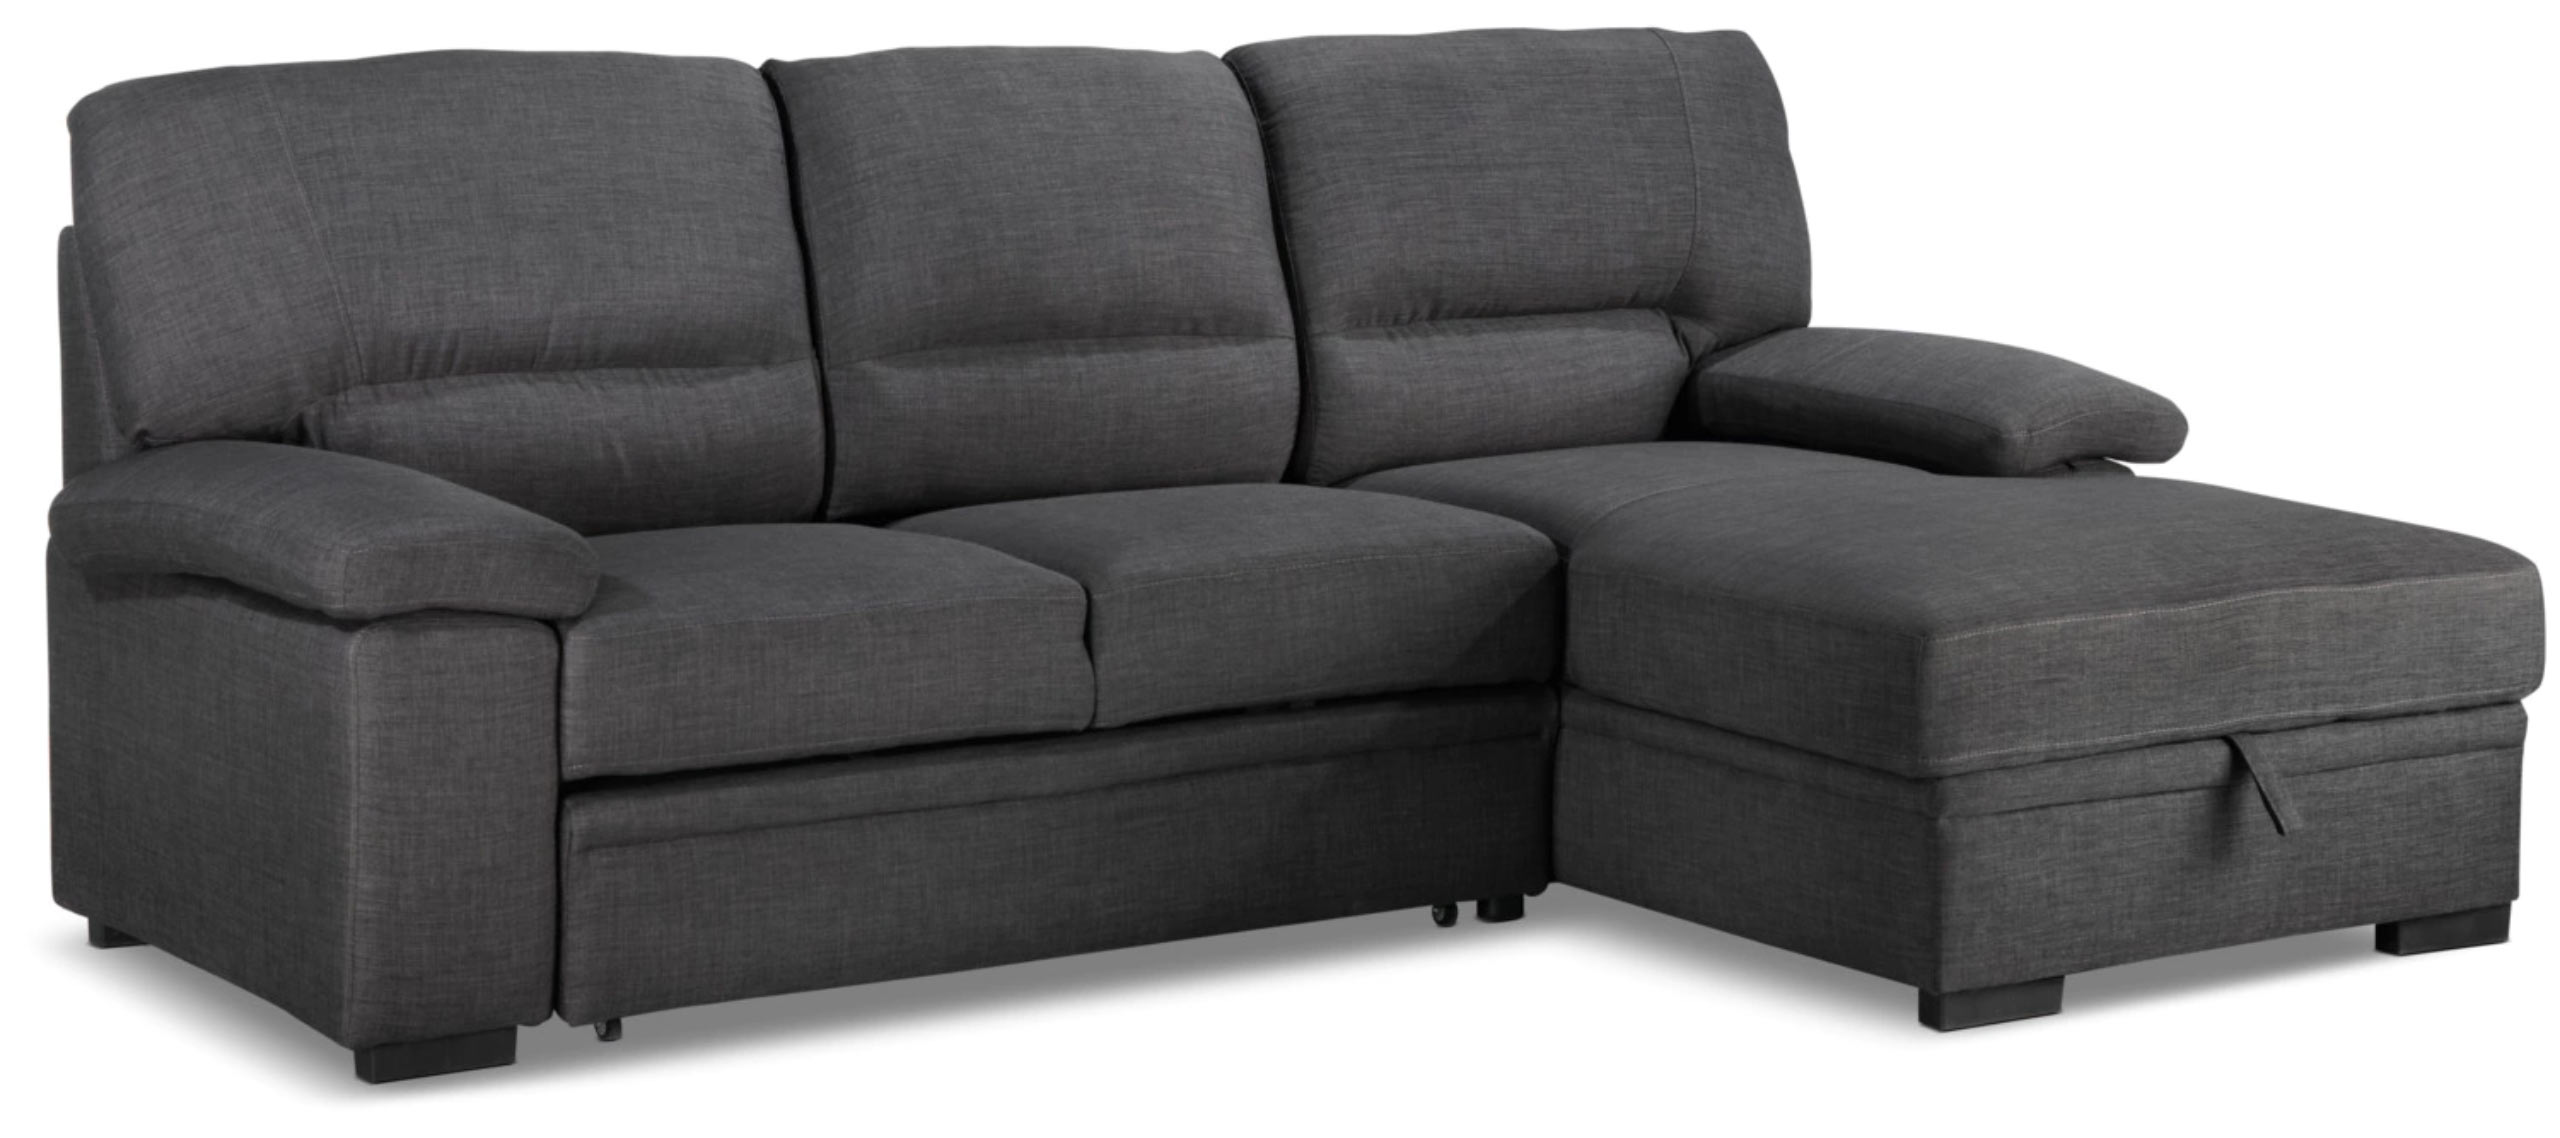 memory seating room piece sectional product foam american living item sectionals sleeper smoke brando